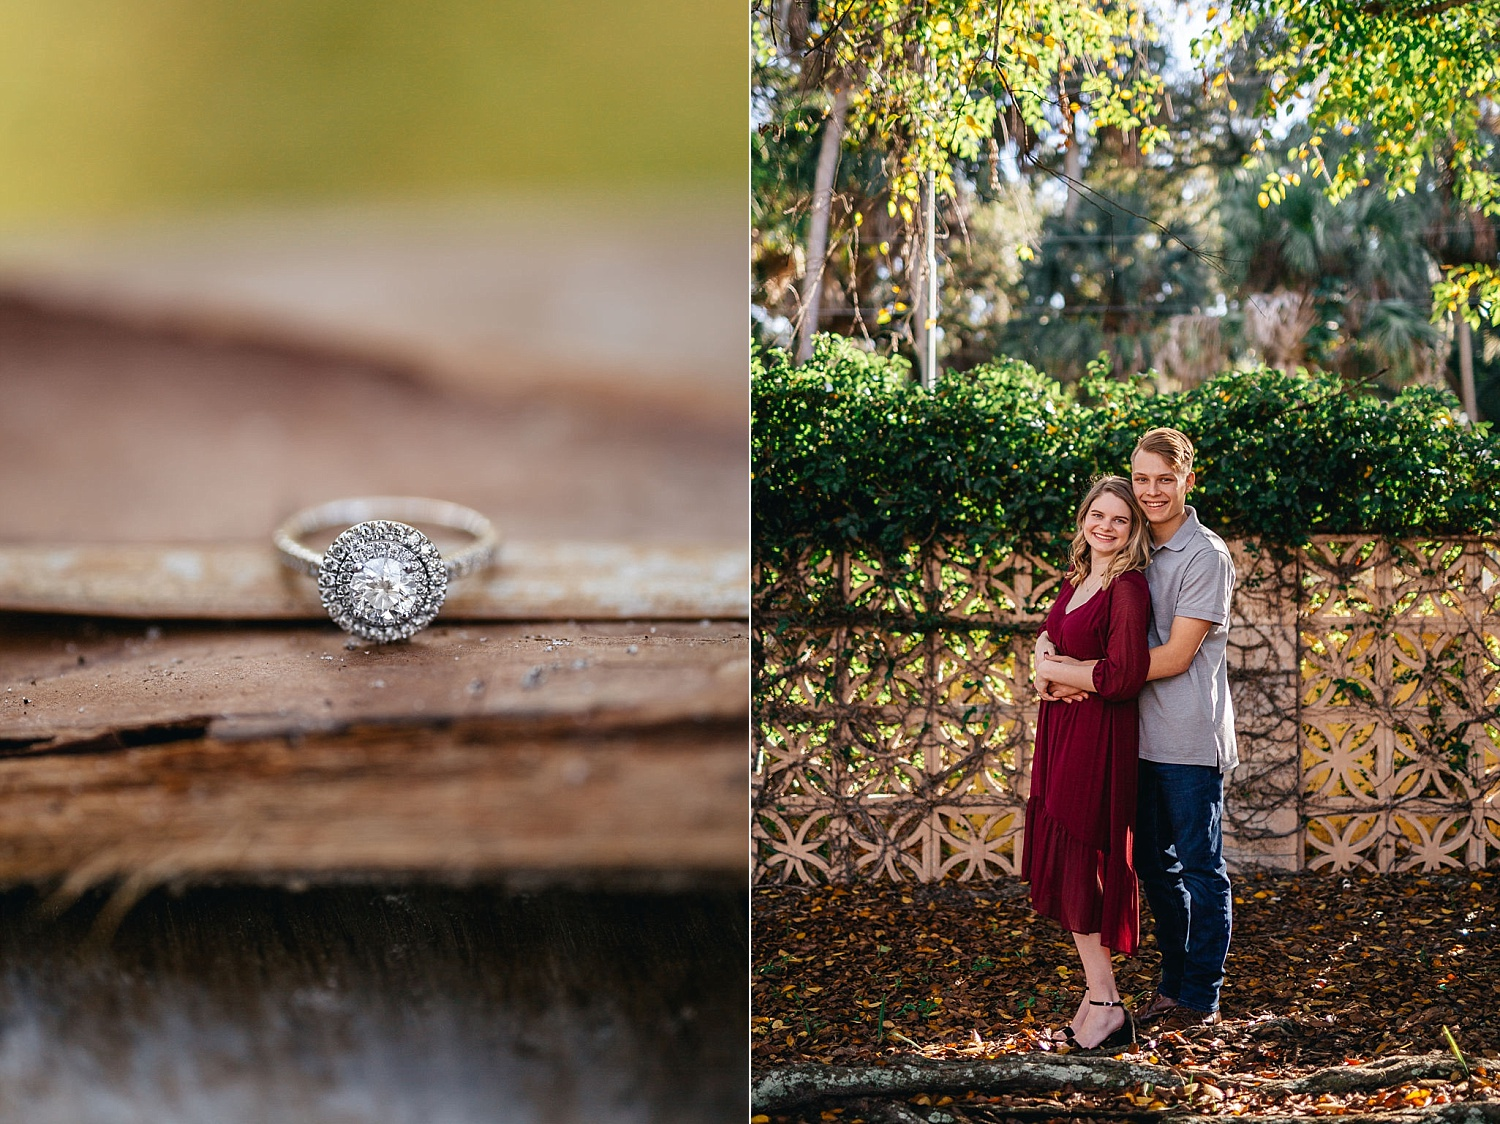 HighlightStudios-LifestyleEngagementPhotos-EmmeandCaleb-62_Engagement Session South Tampa.jpg